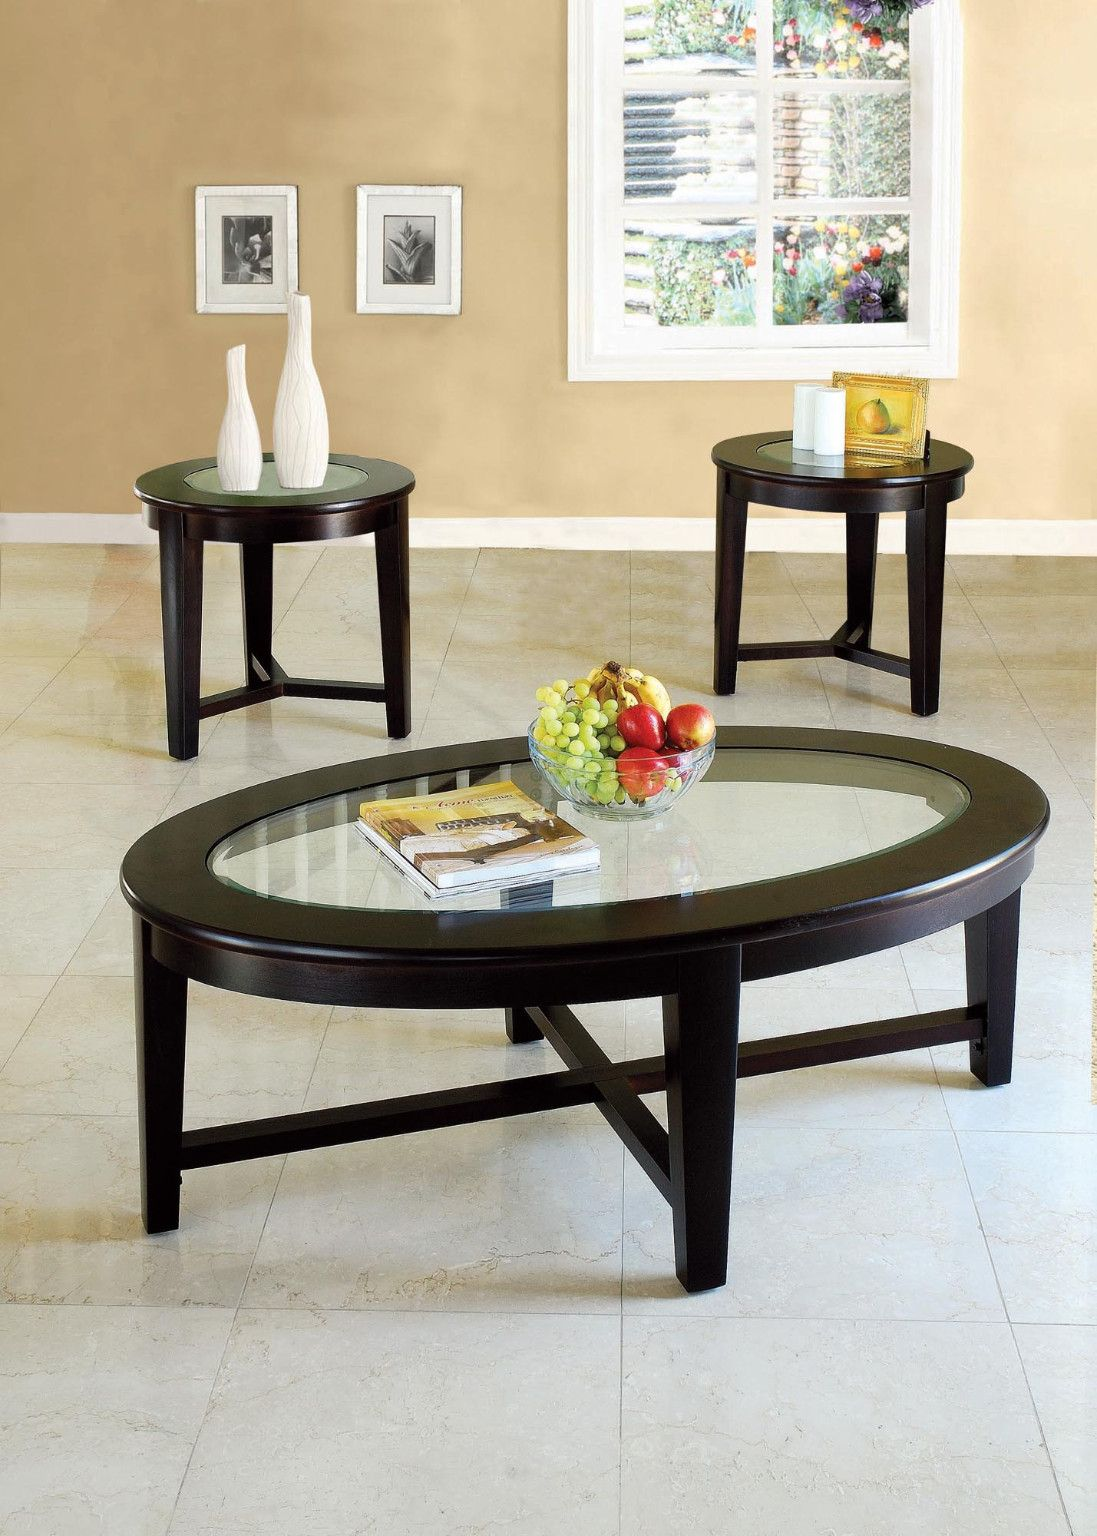 3 Piece Table Set Coffee table and 2 End Tables 399.00